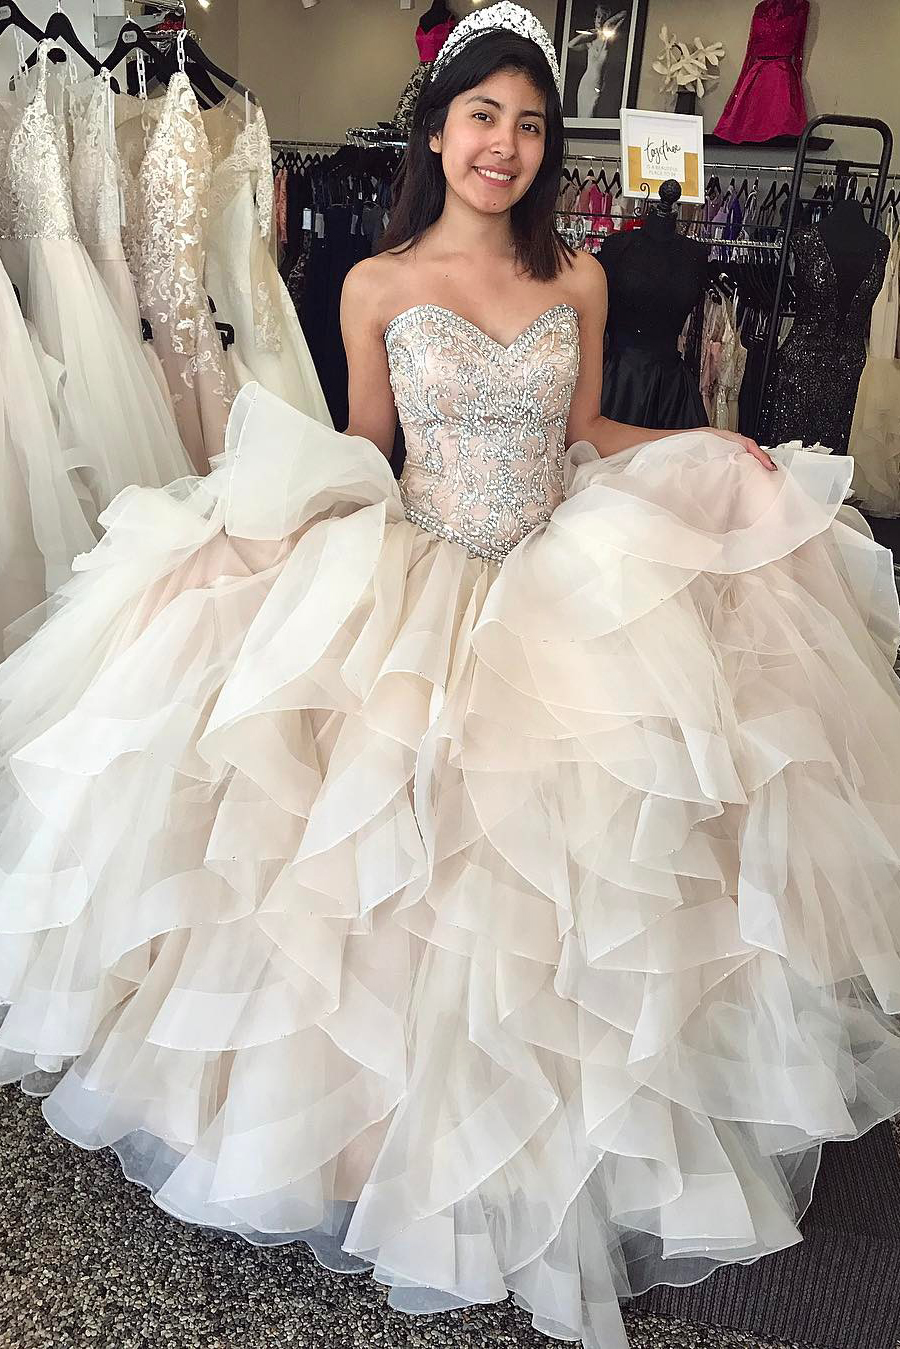 Stunning Champagne Quinceanera Dresses Ball Gown Elegant Prom Dresses With Crystal Ruffles Tiered Lxury Vestido 15 Anos Sweet 16